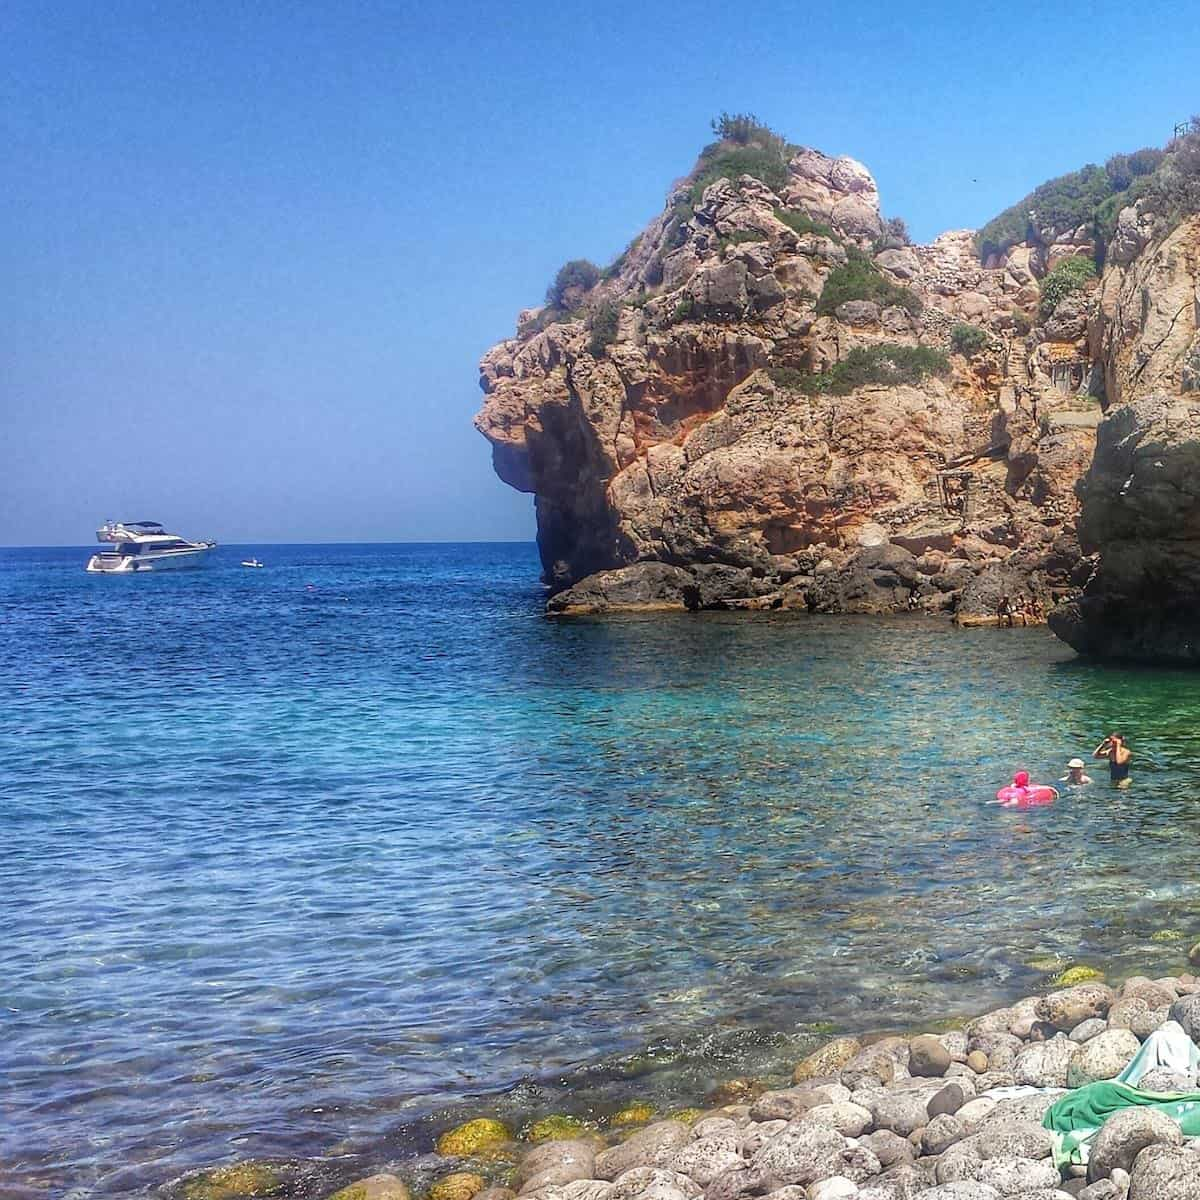 Beach in Mallorca with stones leading into the water and a small rock formation